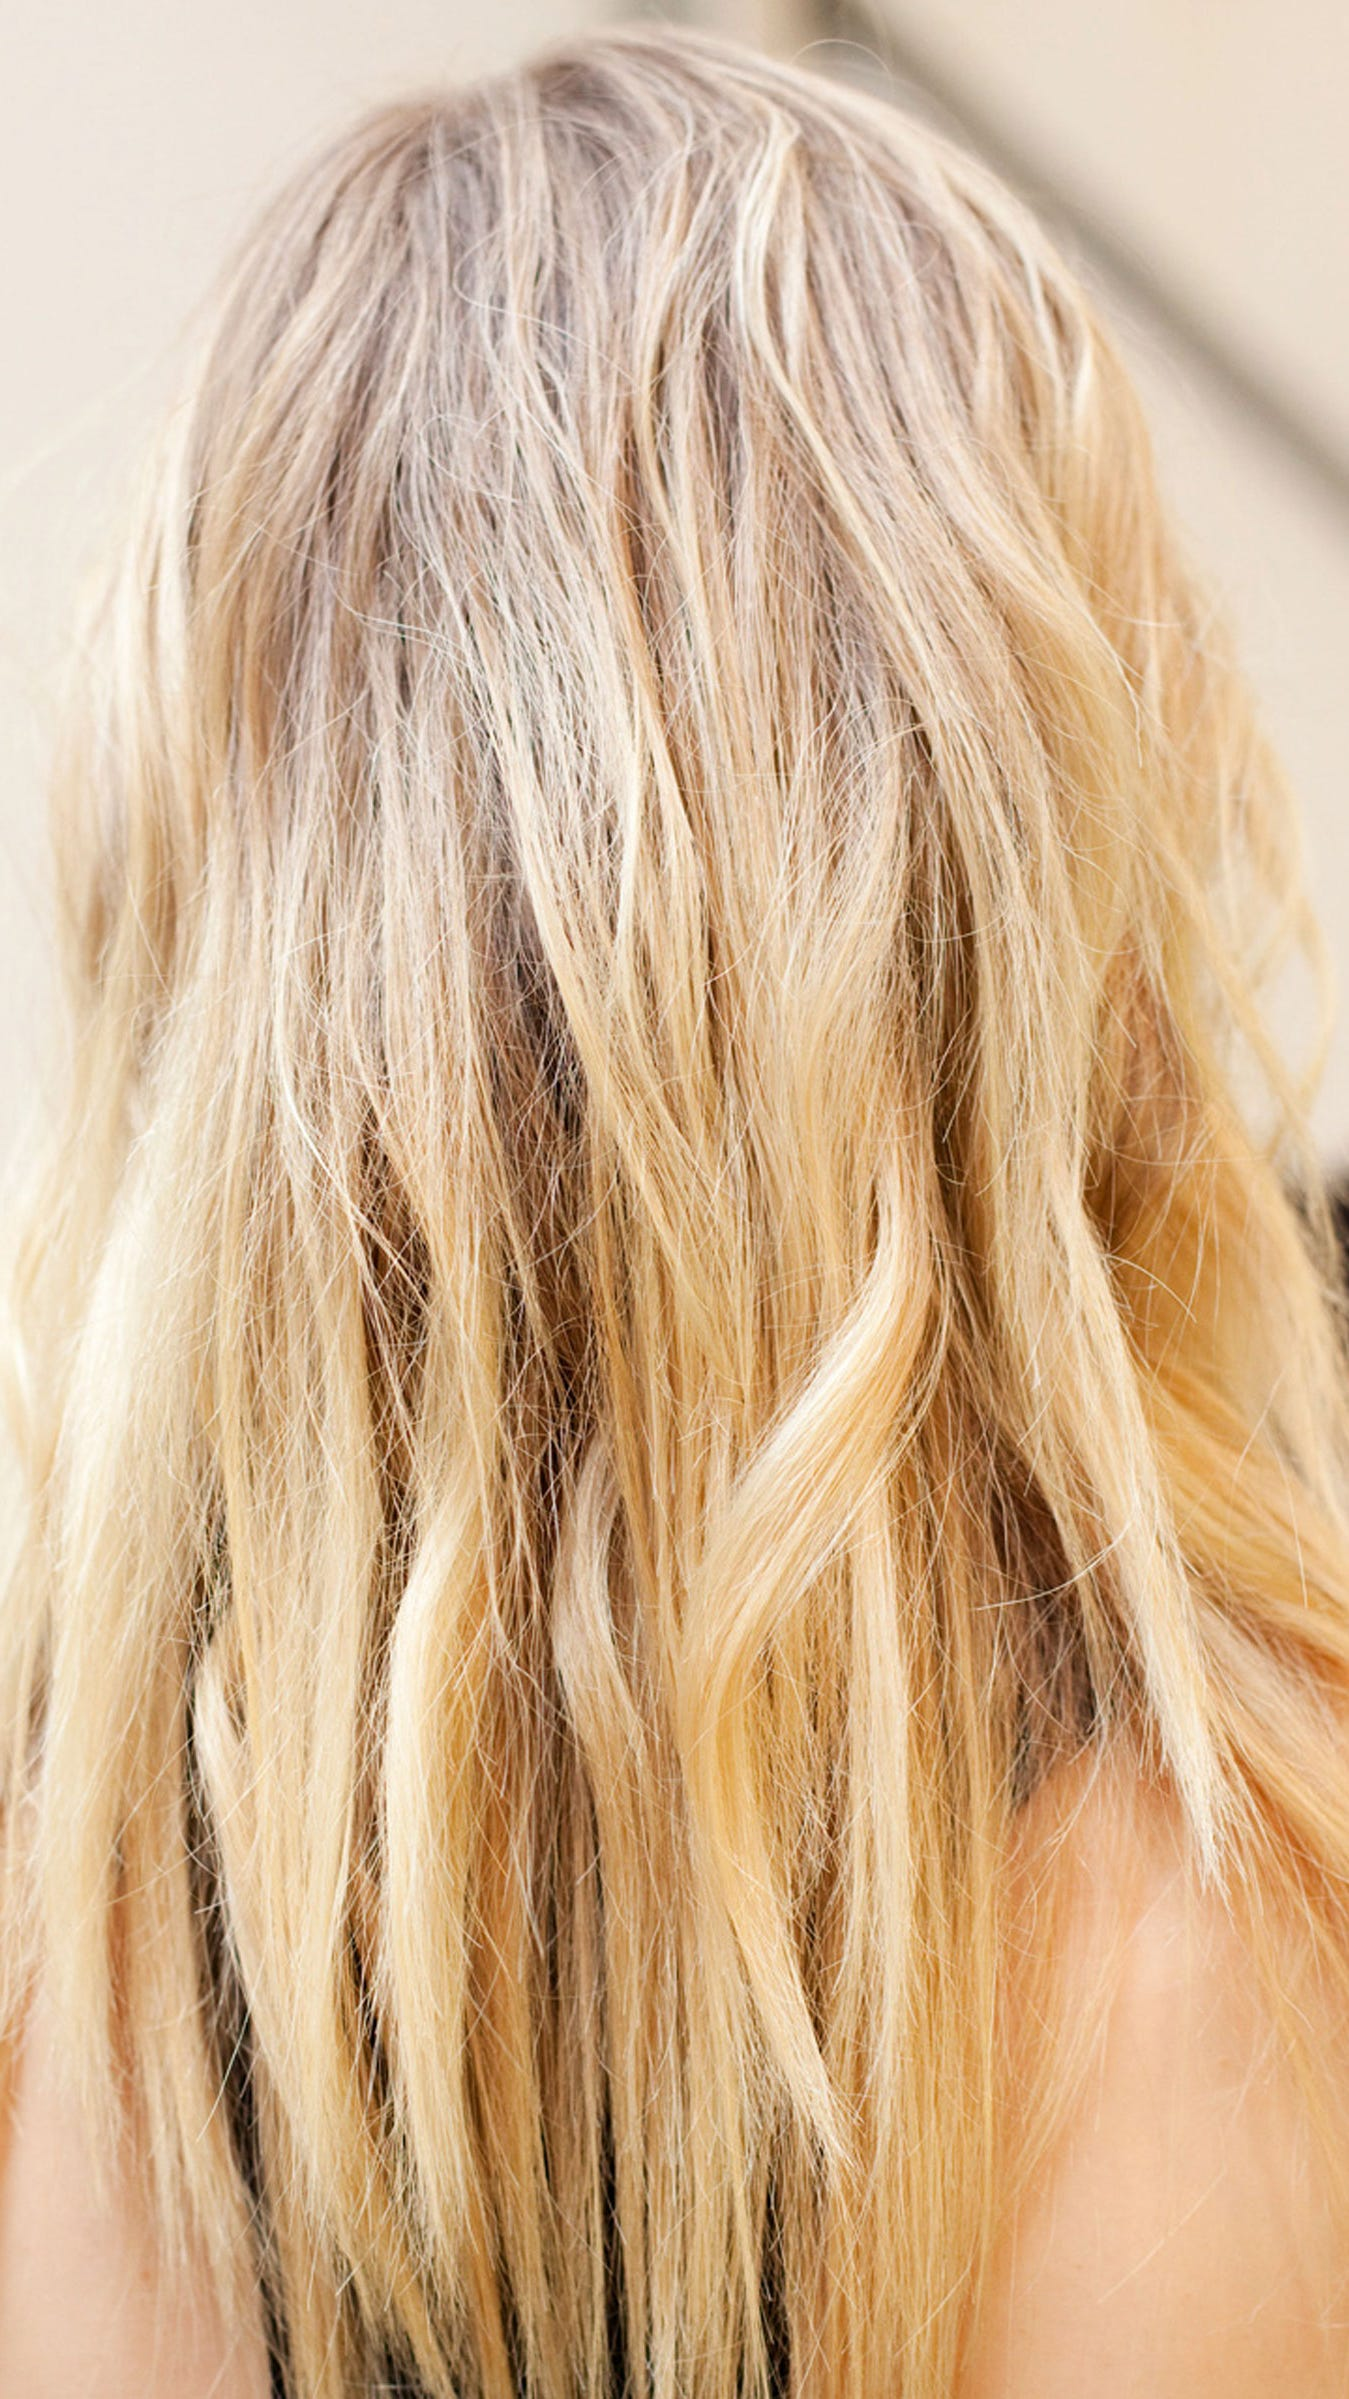 Blonde Hair Dye What To Wear Style Outfits For Blondes